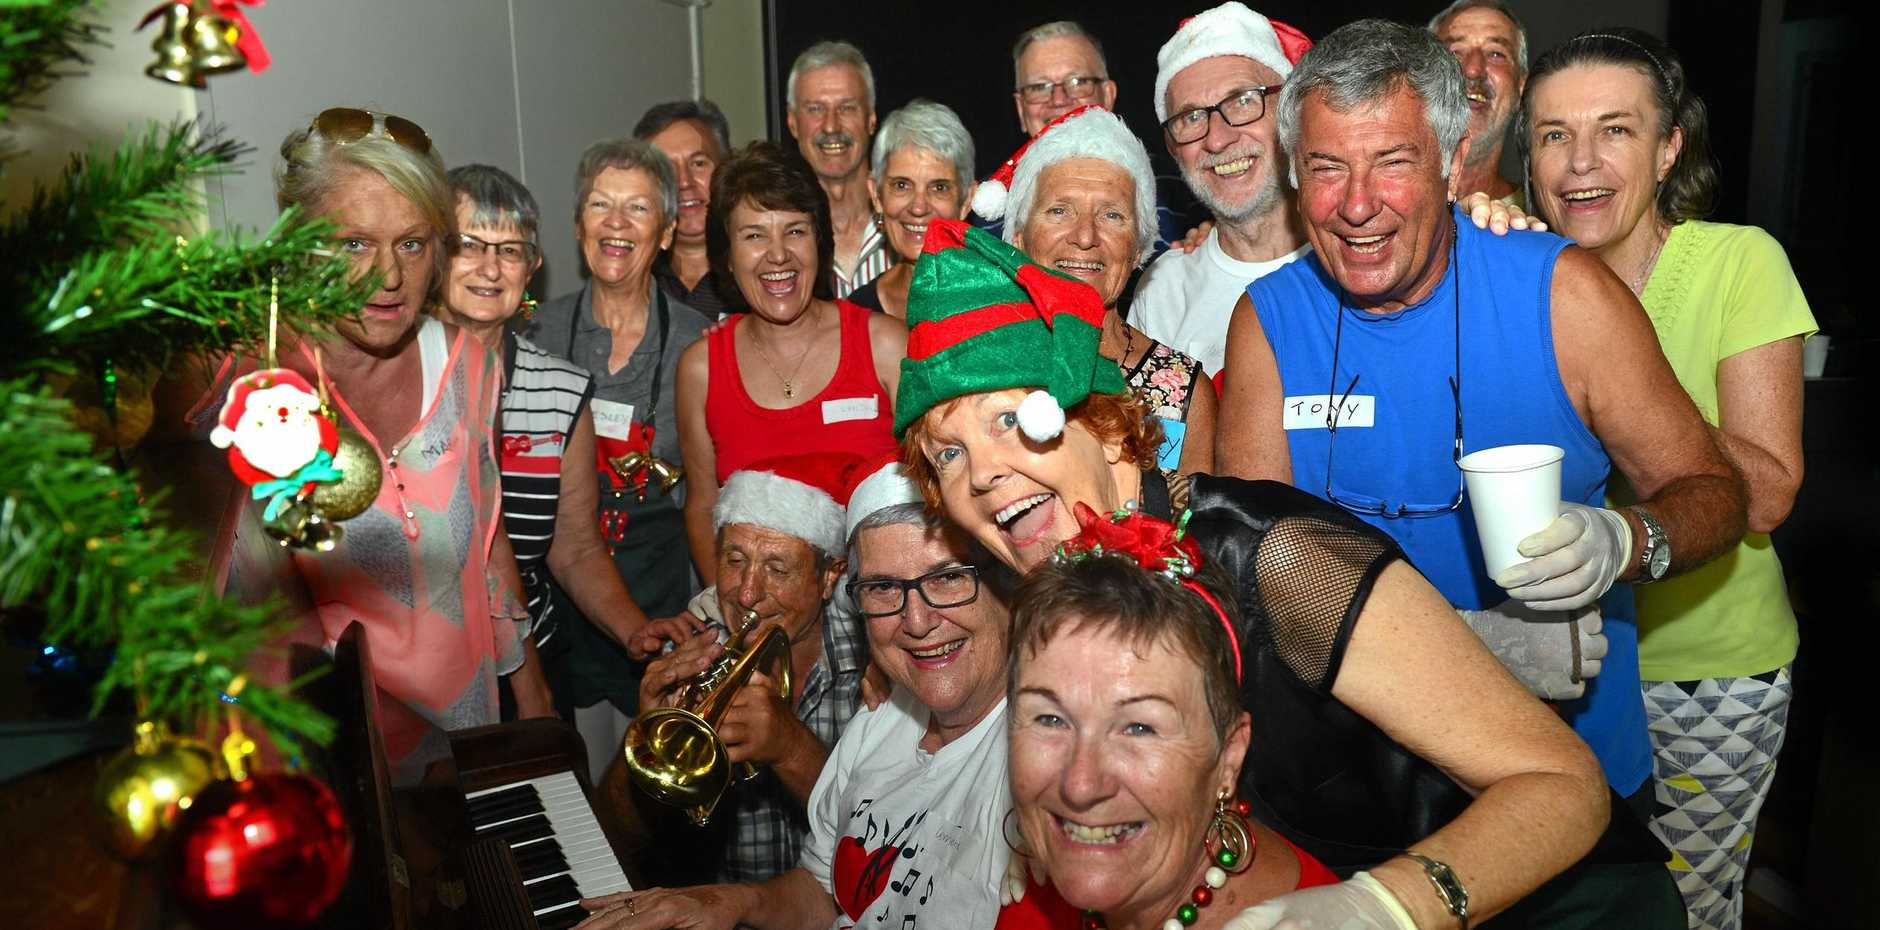 COMMUNITY SPIRIT: Coolum HeARTS volunteers spread the Christmas cheer as they work to prepare a Christmas luncheon for 100 homeless people.